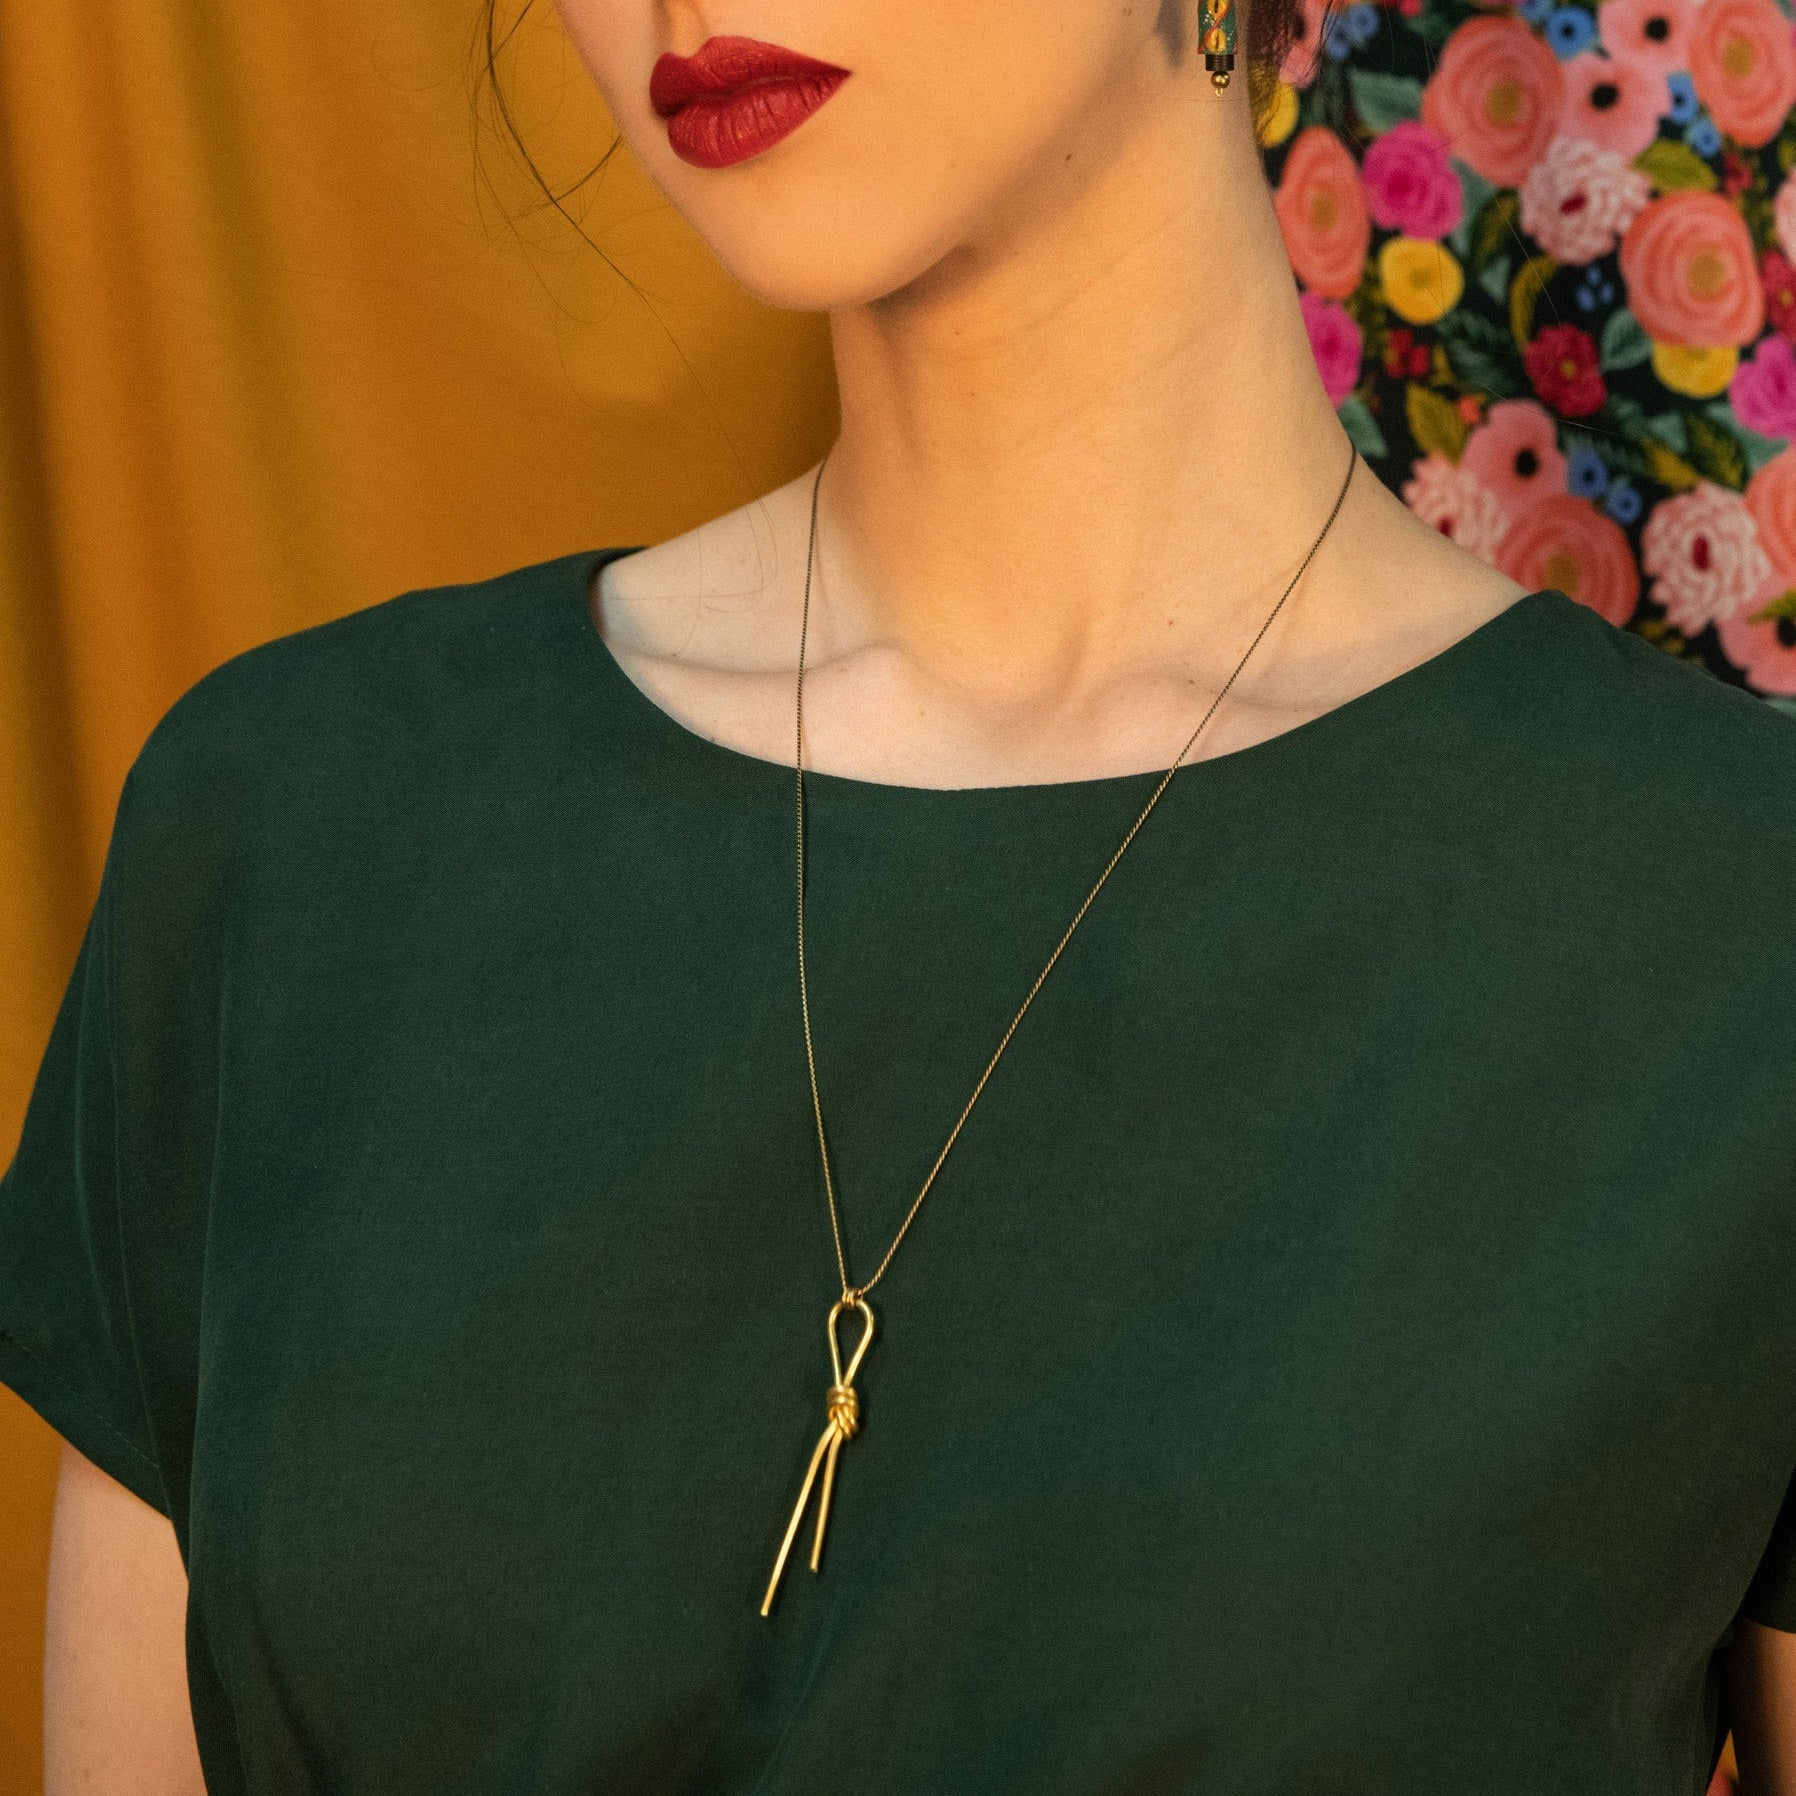 Lodo Necklace - Handcrafted in Brass - Sold by Chic & Basta